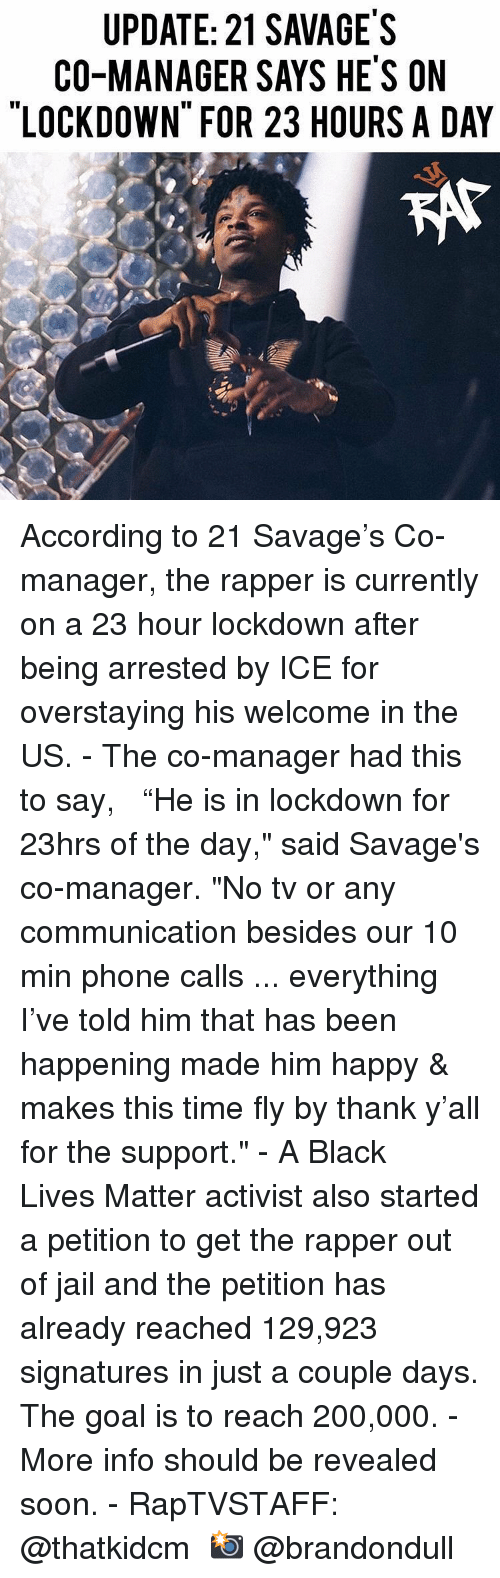 "21 Savage: UPDATE: 21 SAVAGE'S  CO-MANAGER SAYS HE'S ON  LOCKDOWN FOR 23 HOURS A DAY  KAt According to 21 Savage's Co-manager, the rapper is currently on a 23 hour lockdown after being arrested by ICE for overstaying his welcome in the US.⁣ -⁣ The co-manager had this to say, ⁣ ⁣ ""He is in lockdown for 23hrs of the day,"" said Savage's co-manager. ""No tv or any communication besides our 10 min phone calls ... everything I've told him that has been happening made him happy & makes this time fly by thank y'all for the support.""⁣ -⁣ A Black Lives Matter activist also started a petition to get the rapper out of jail and the petition has already reached 129,923 signatures in just a couple days. The goal is to reach 200,000.⁣ -⁣ More info should be revealed soon.⁣ -⁣ RapTVSTAFF: @thatkidcm⁣ 📸 @brandondull"